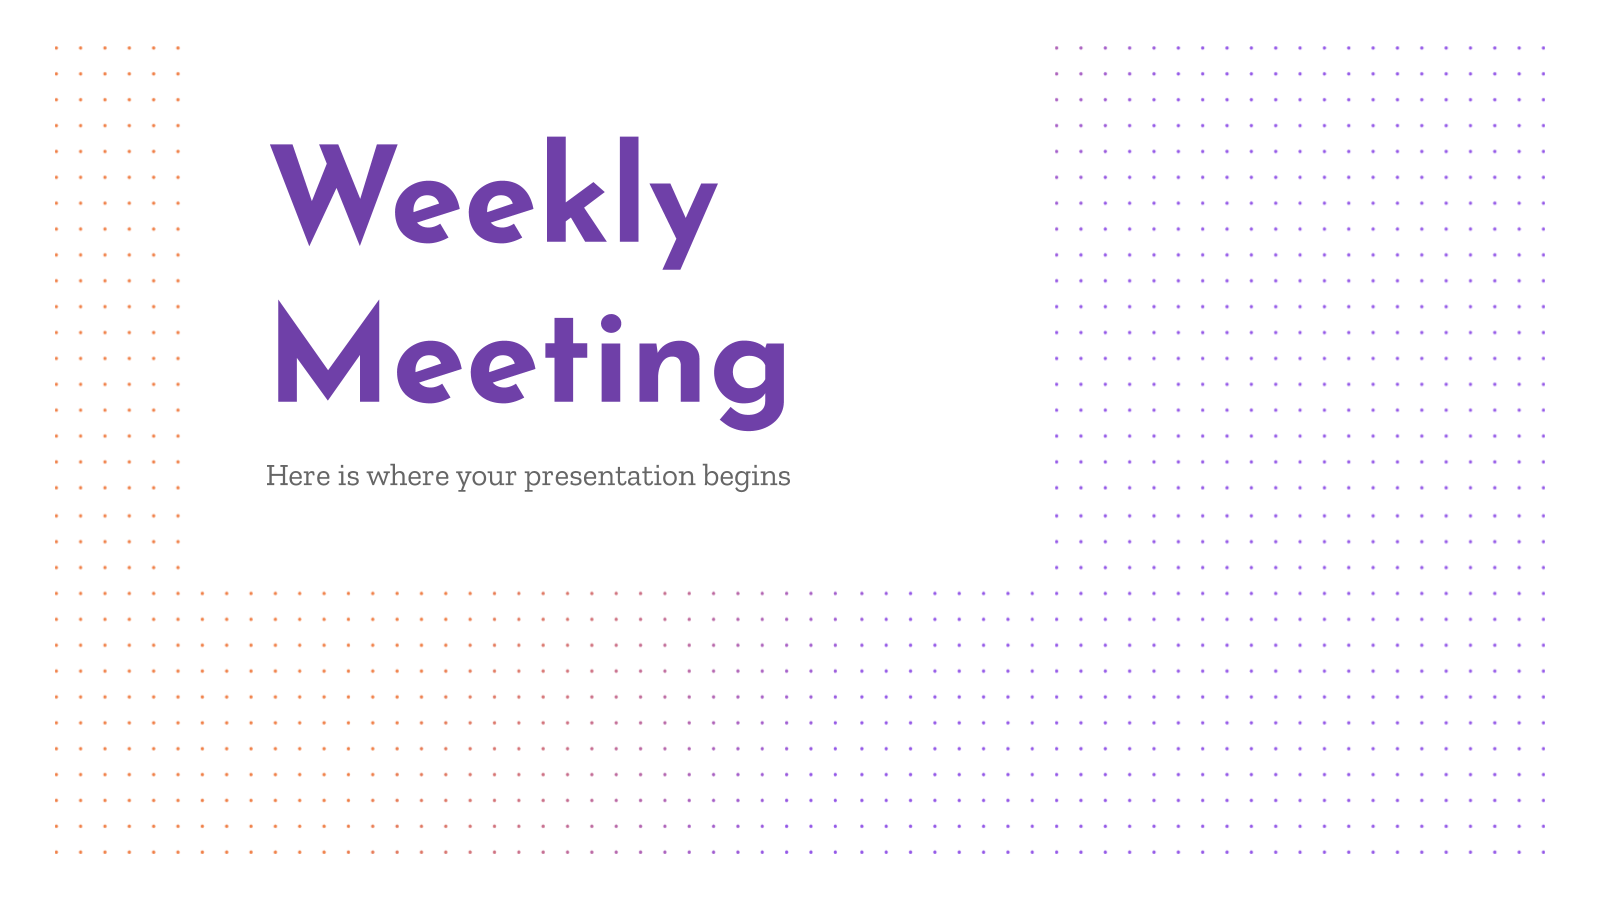 Weekly Meeting presentation template